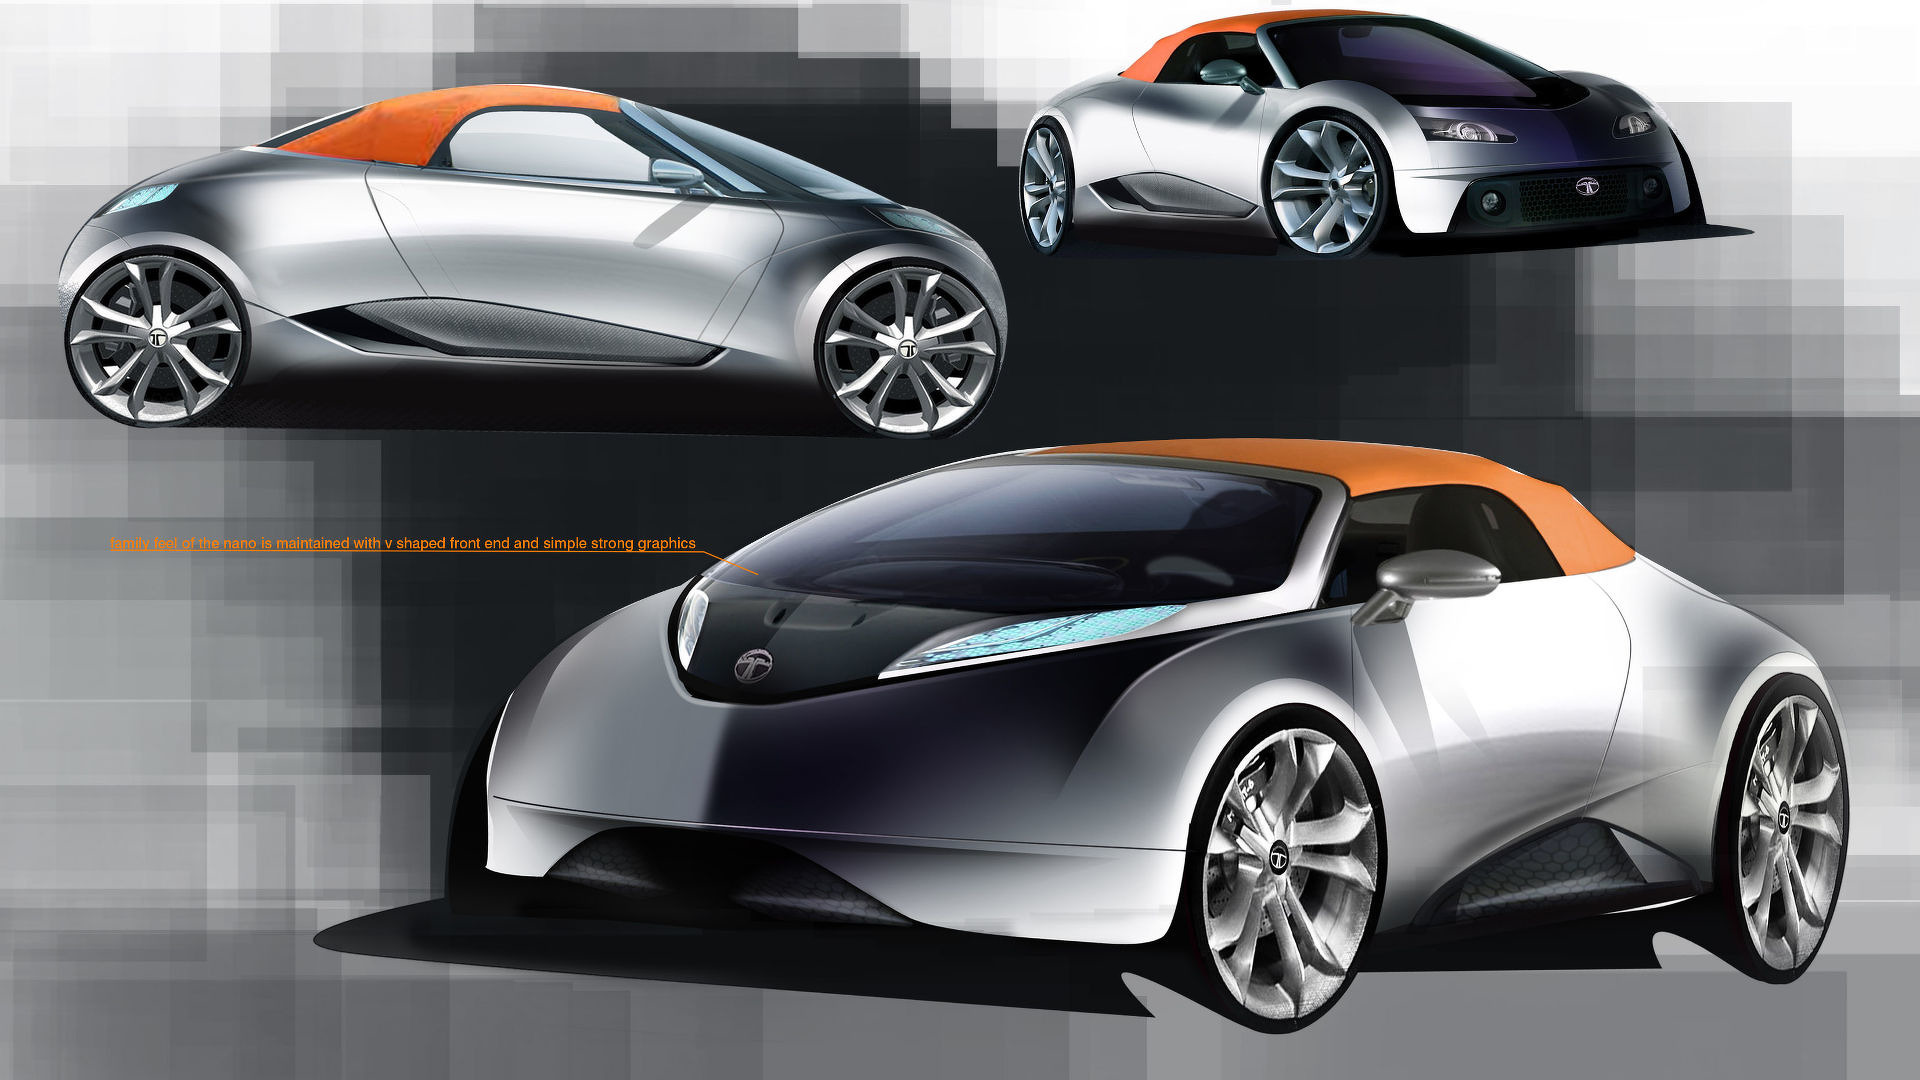 tata sub brand 39 s rumored sports car concept may change low cost image. Black Bedroom Furniture Sets. Home Design Ideas